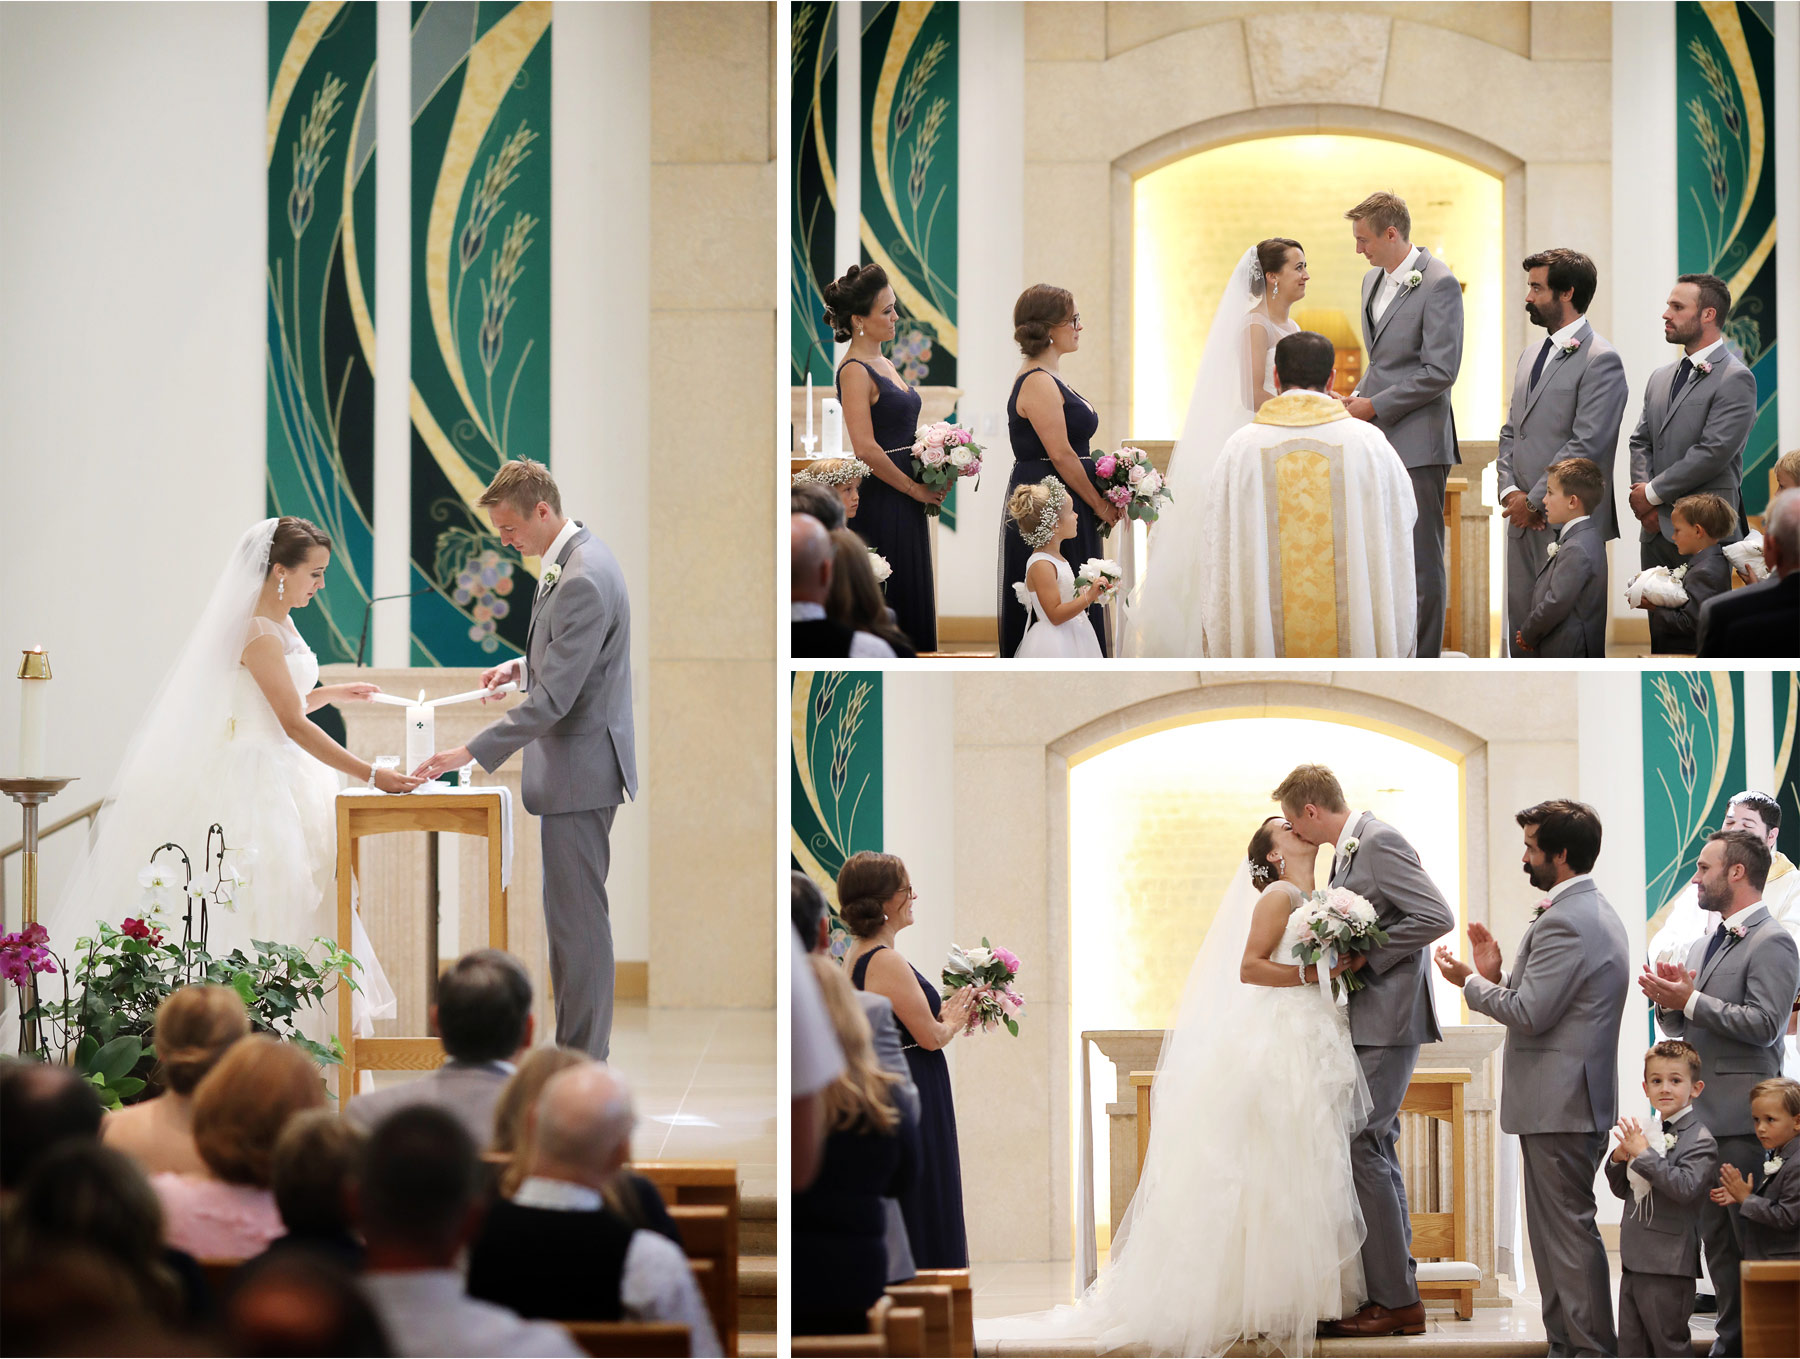 11-Minneapolis-Minnesota-Wedding-Photography-by-Vick-Photography-Our-Lady-of-Grace-Church-Ceremony-Brigid-and-Ernie.jpg